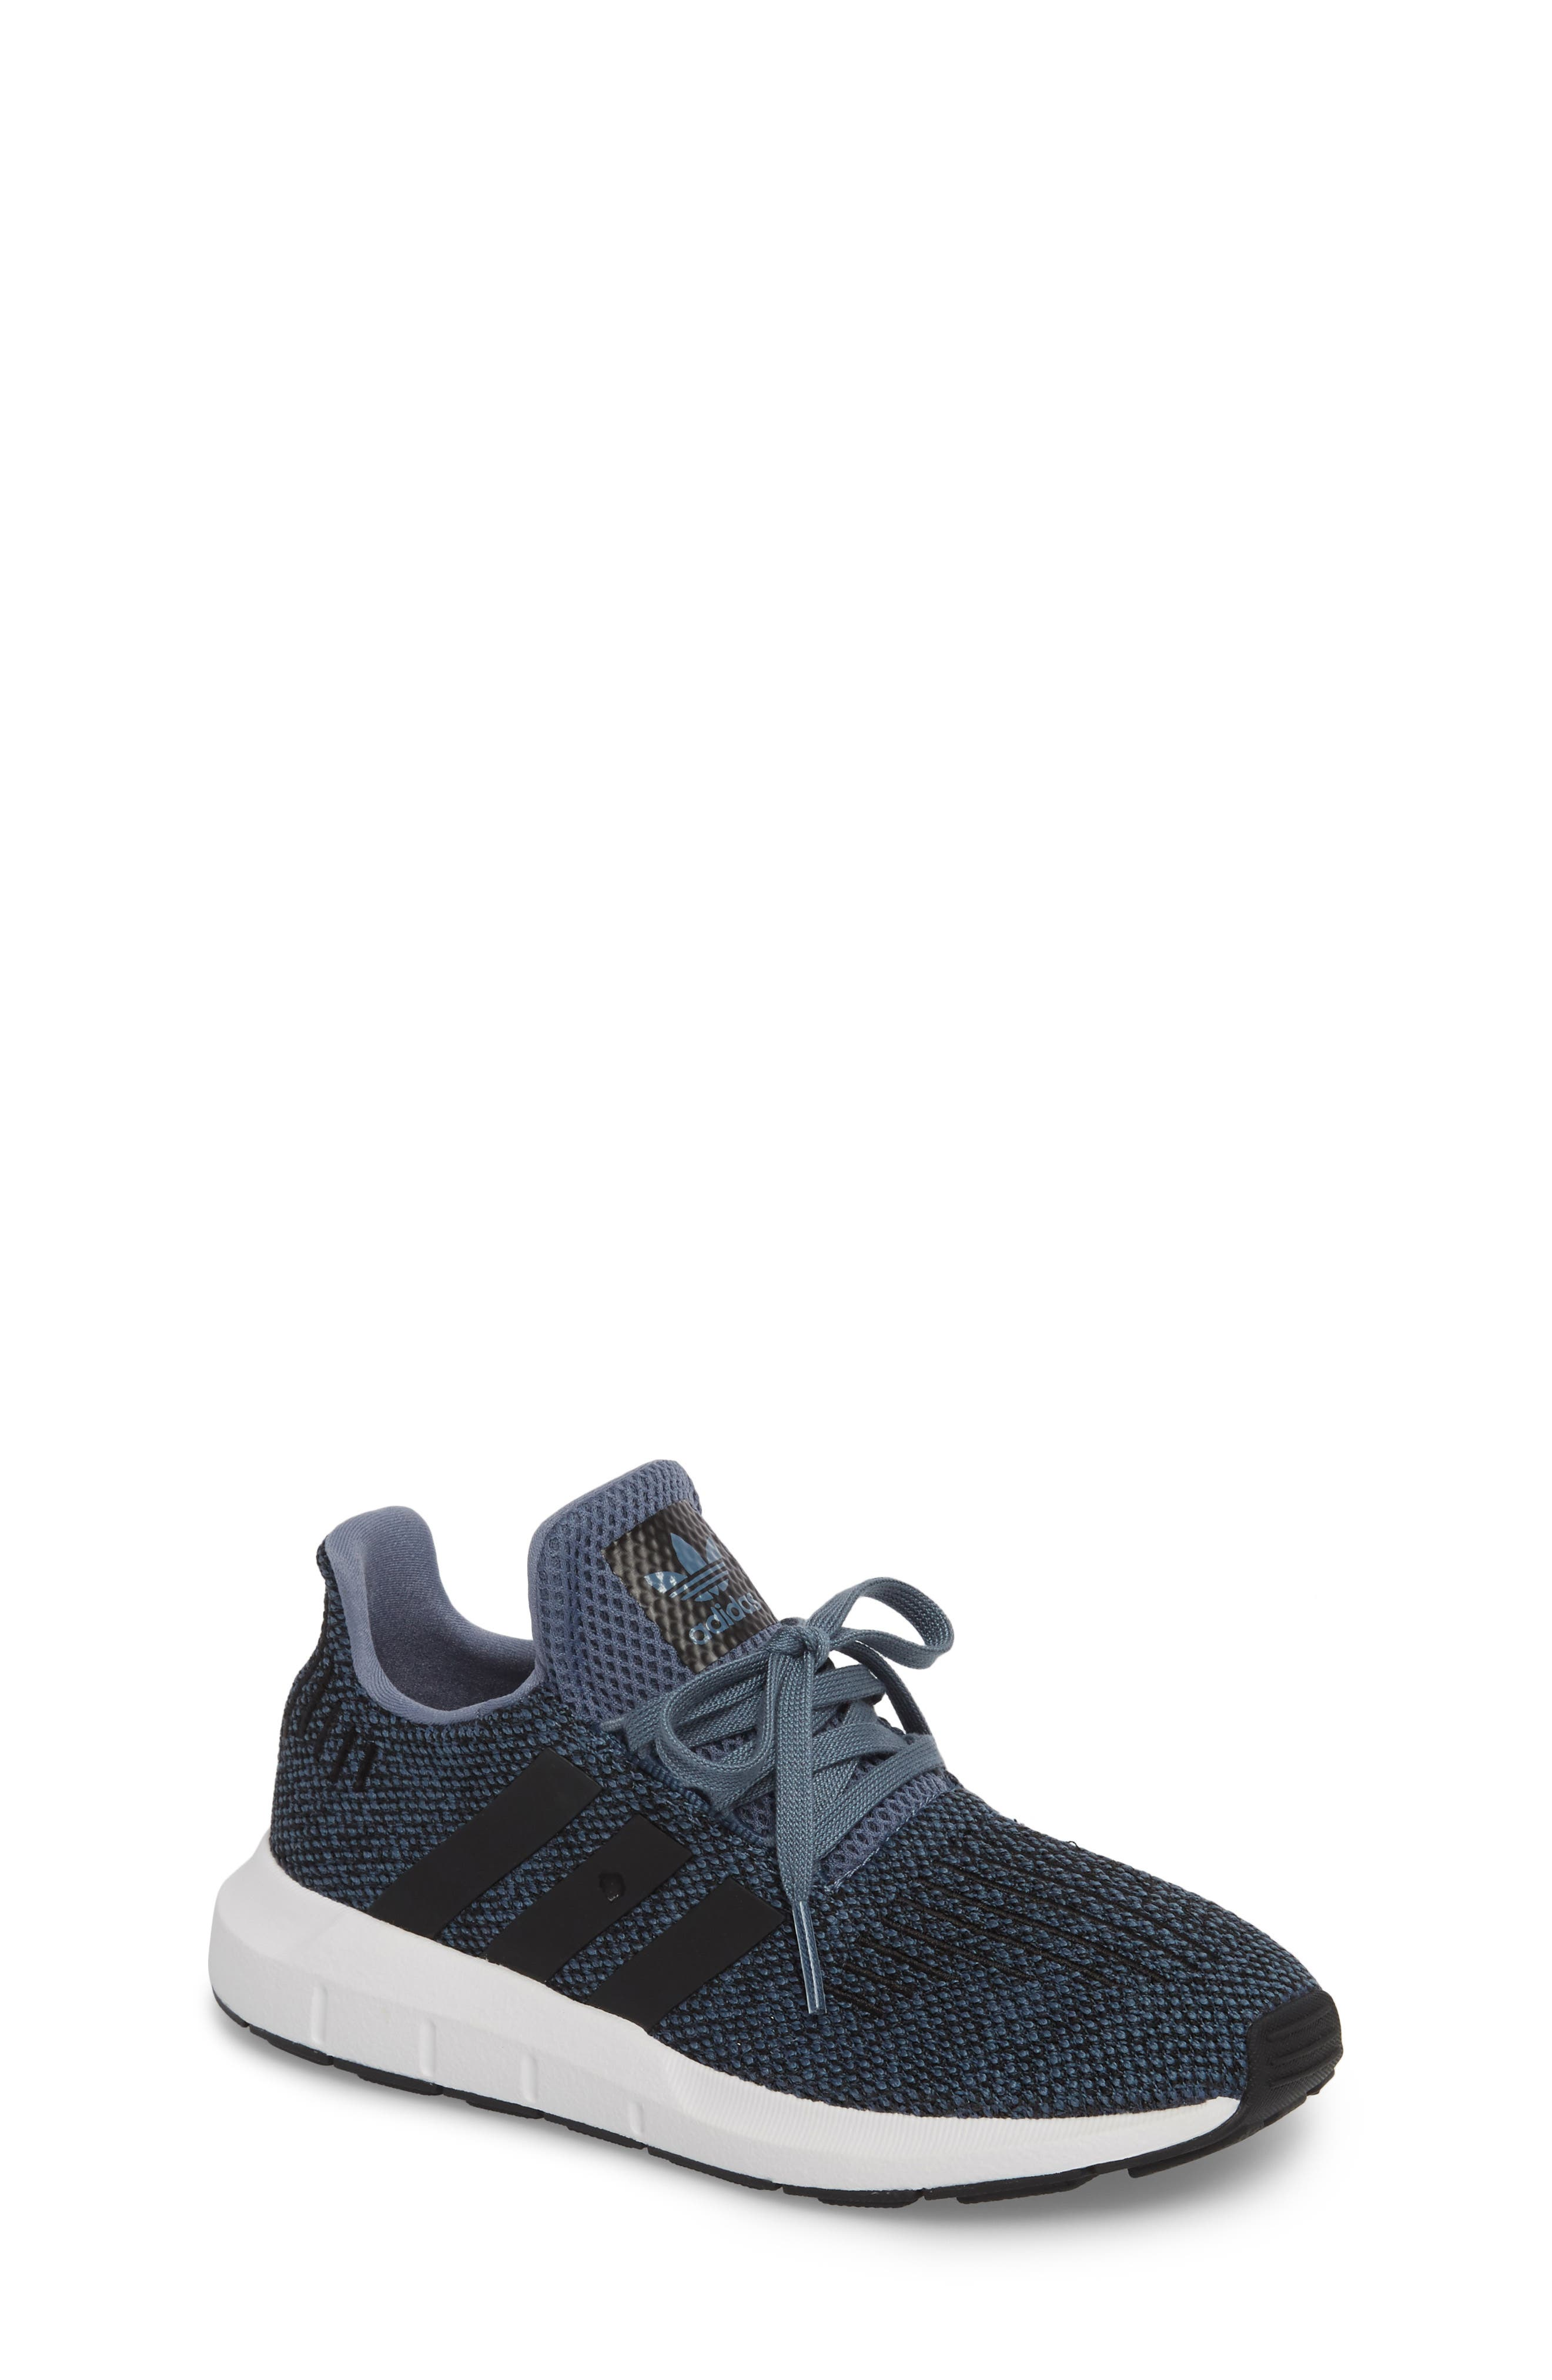 adidas Swift Run J Sneaker (Baby, Walker, Toddler, Little Kid & Big